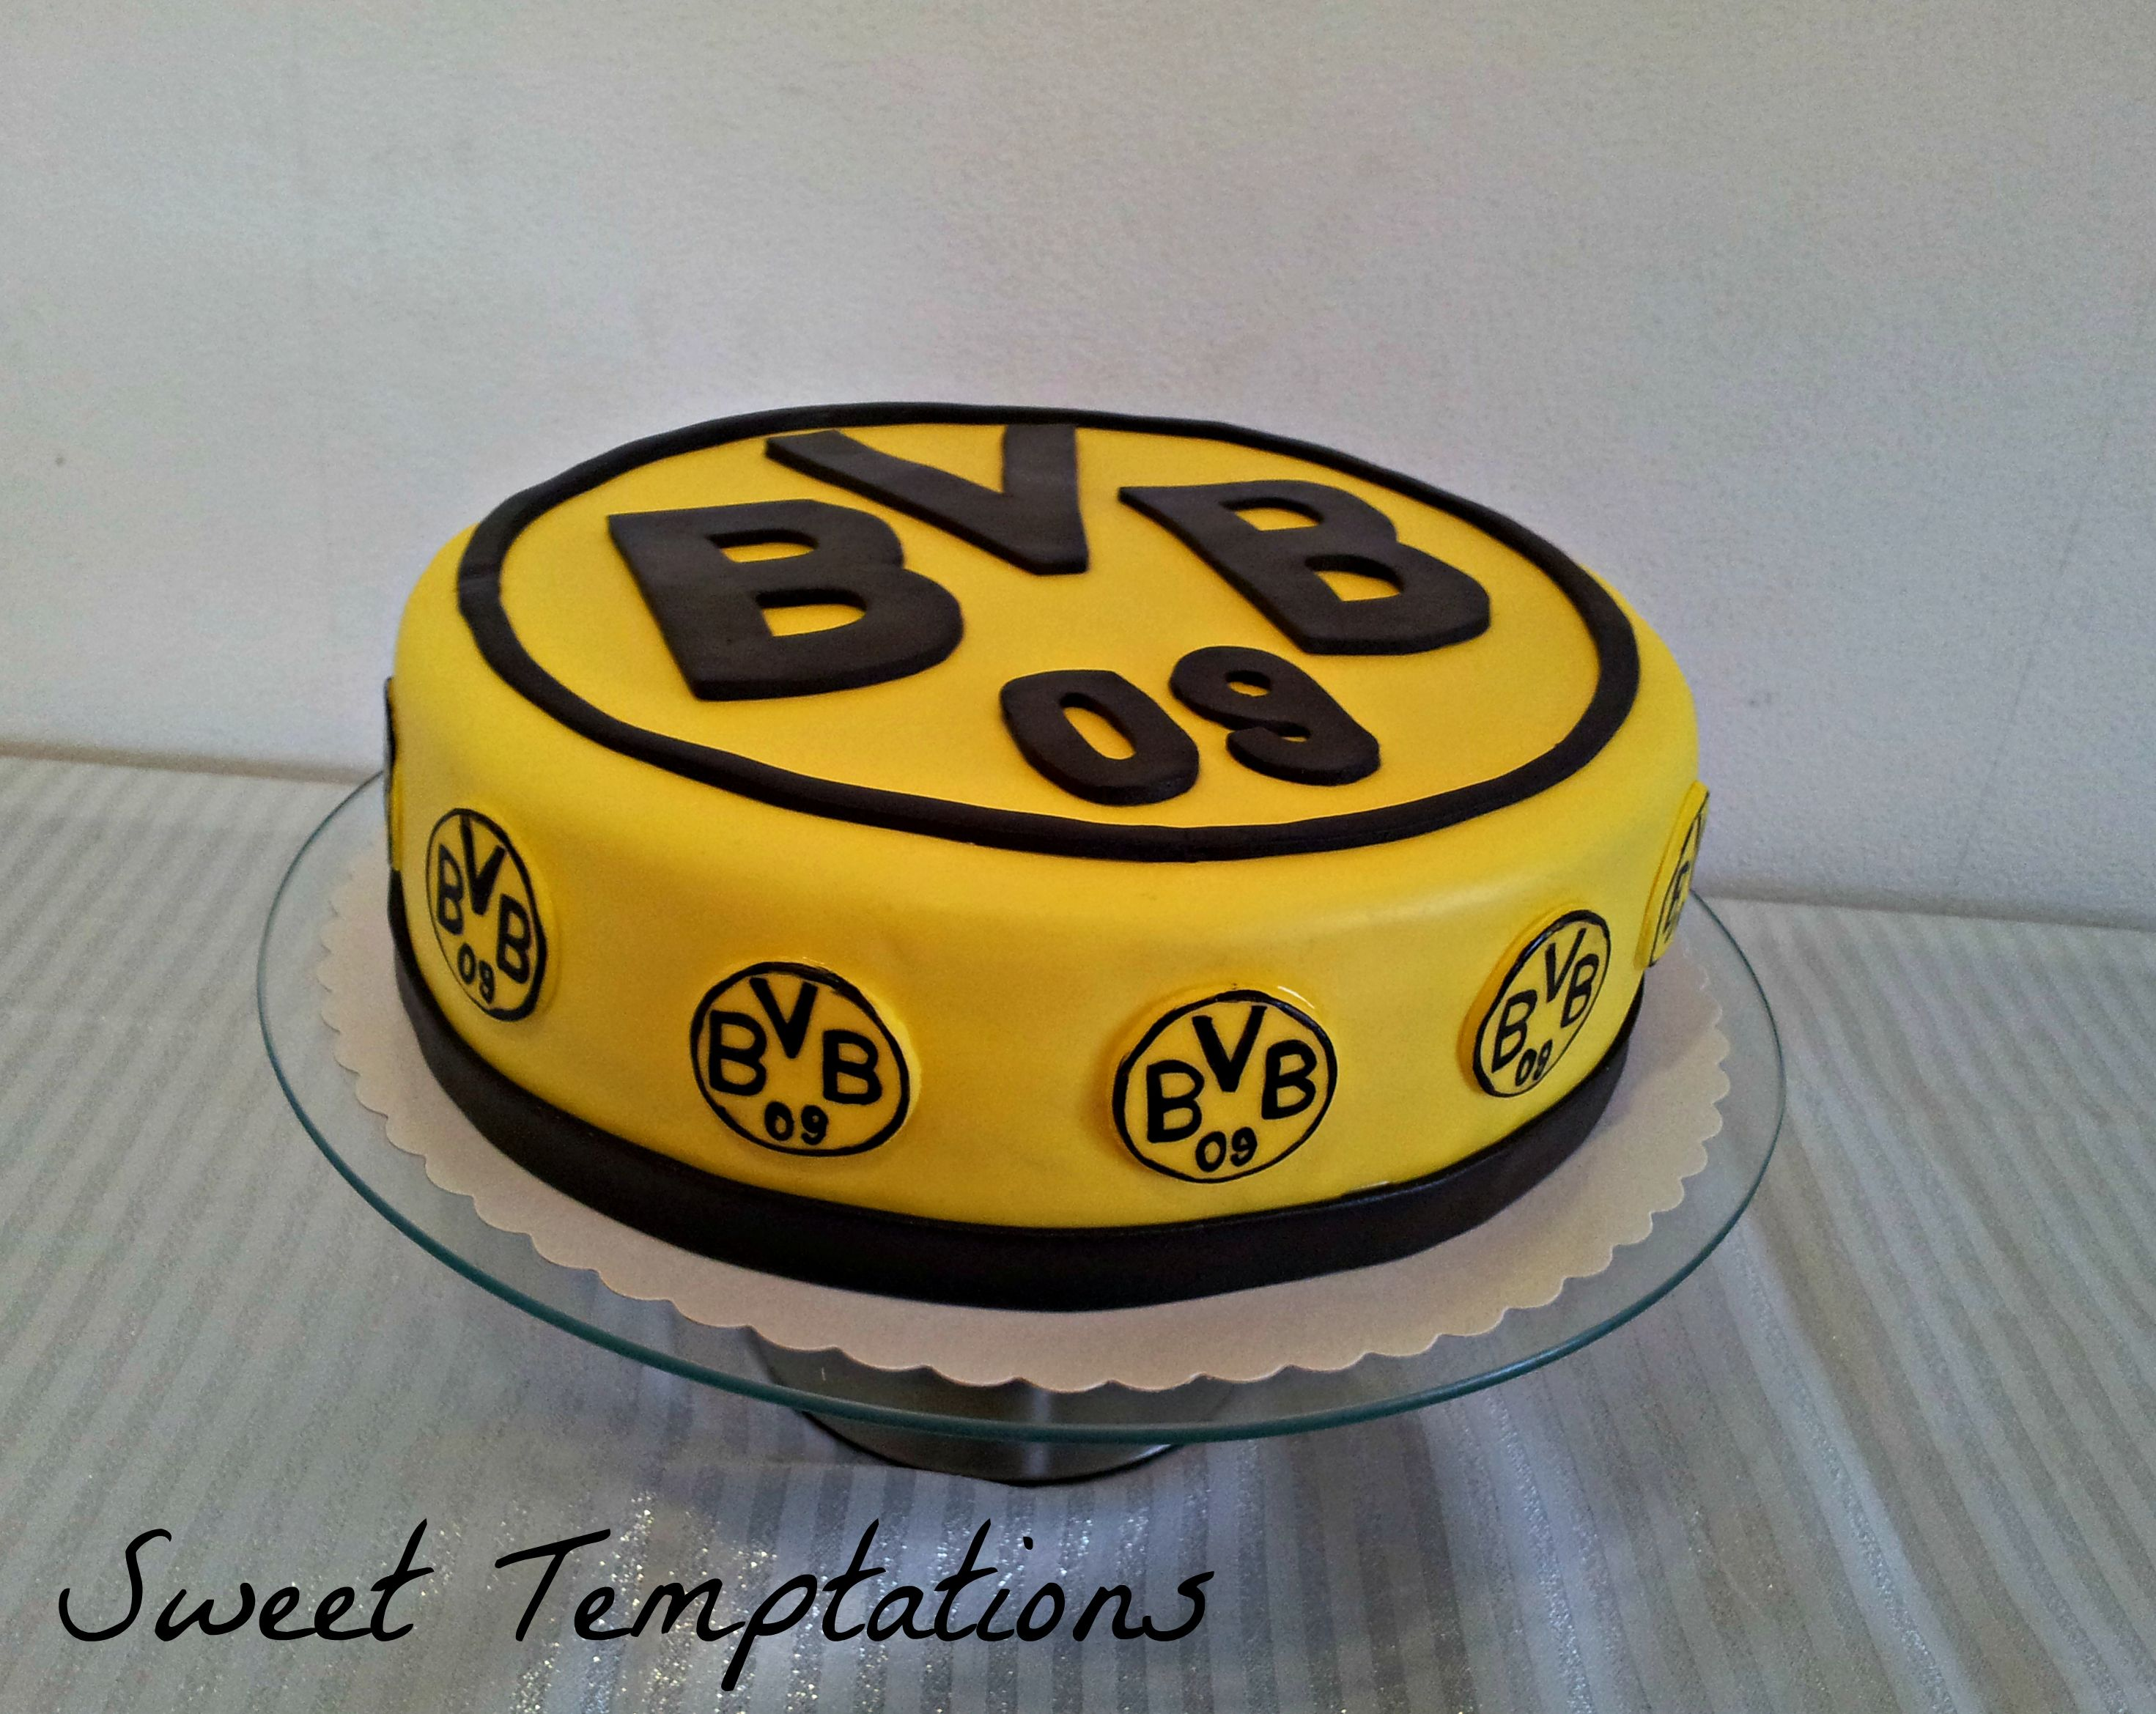 Kuchen Dortmund Bvb Cake Birthday Cake For A Big Borussia Dortmund Fan Its A